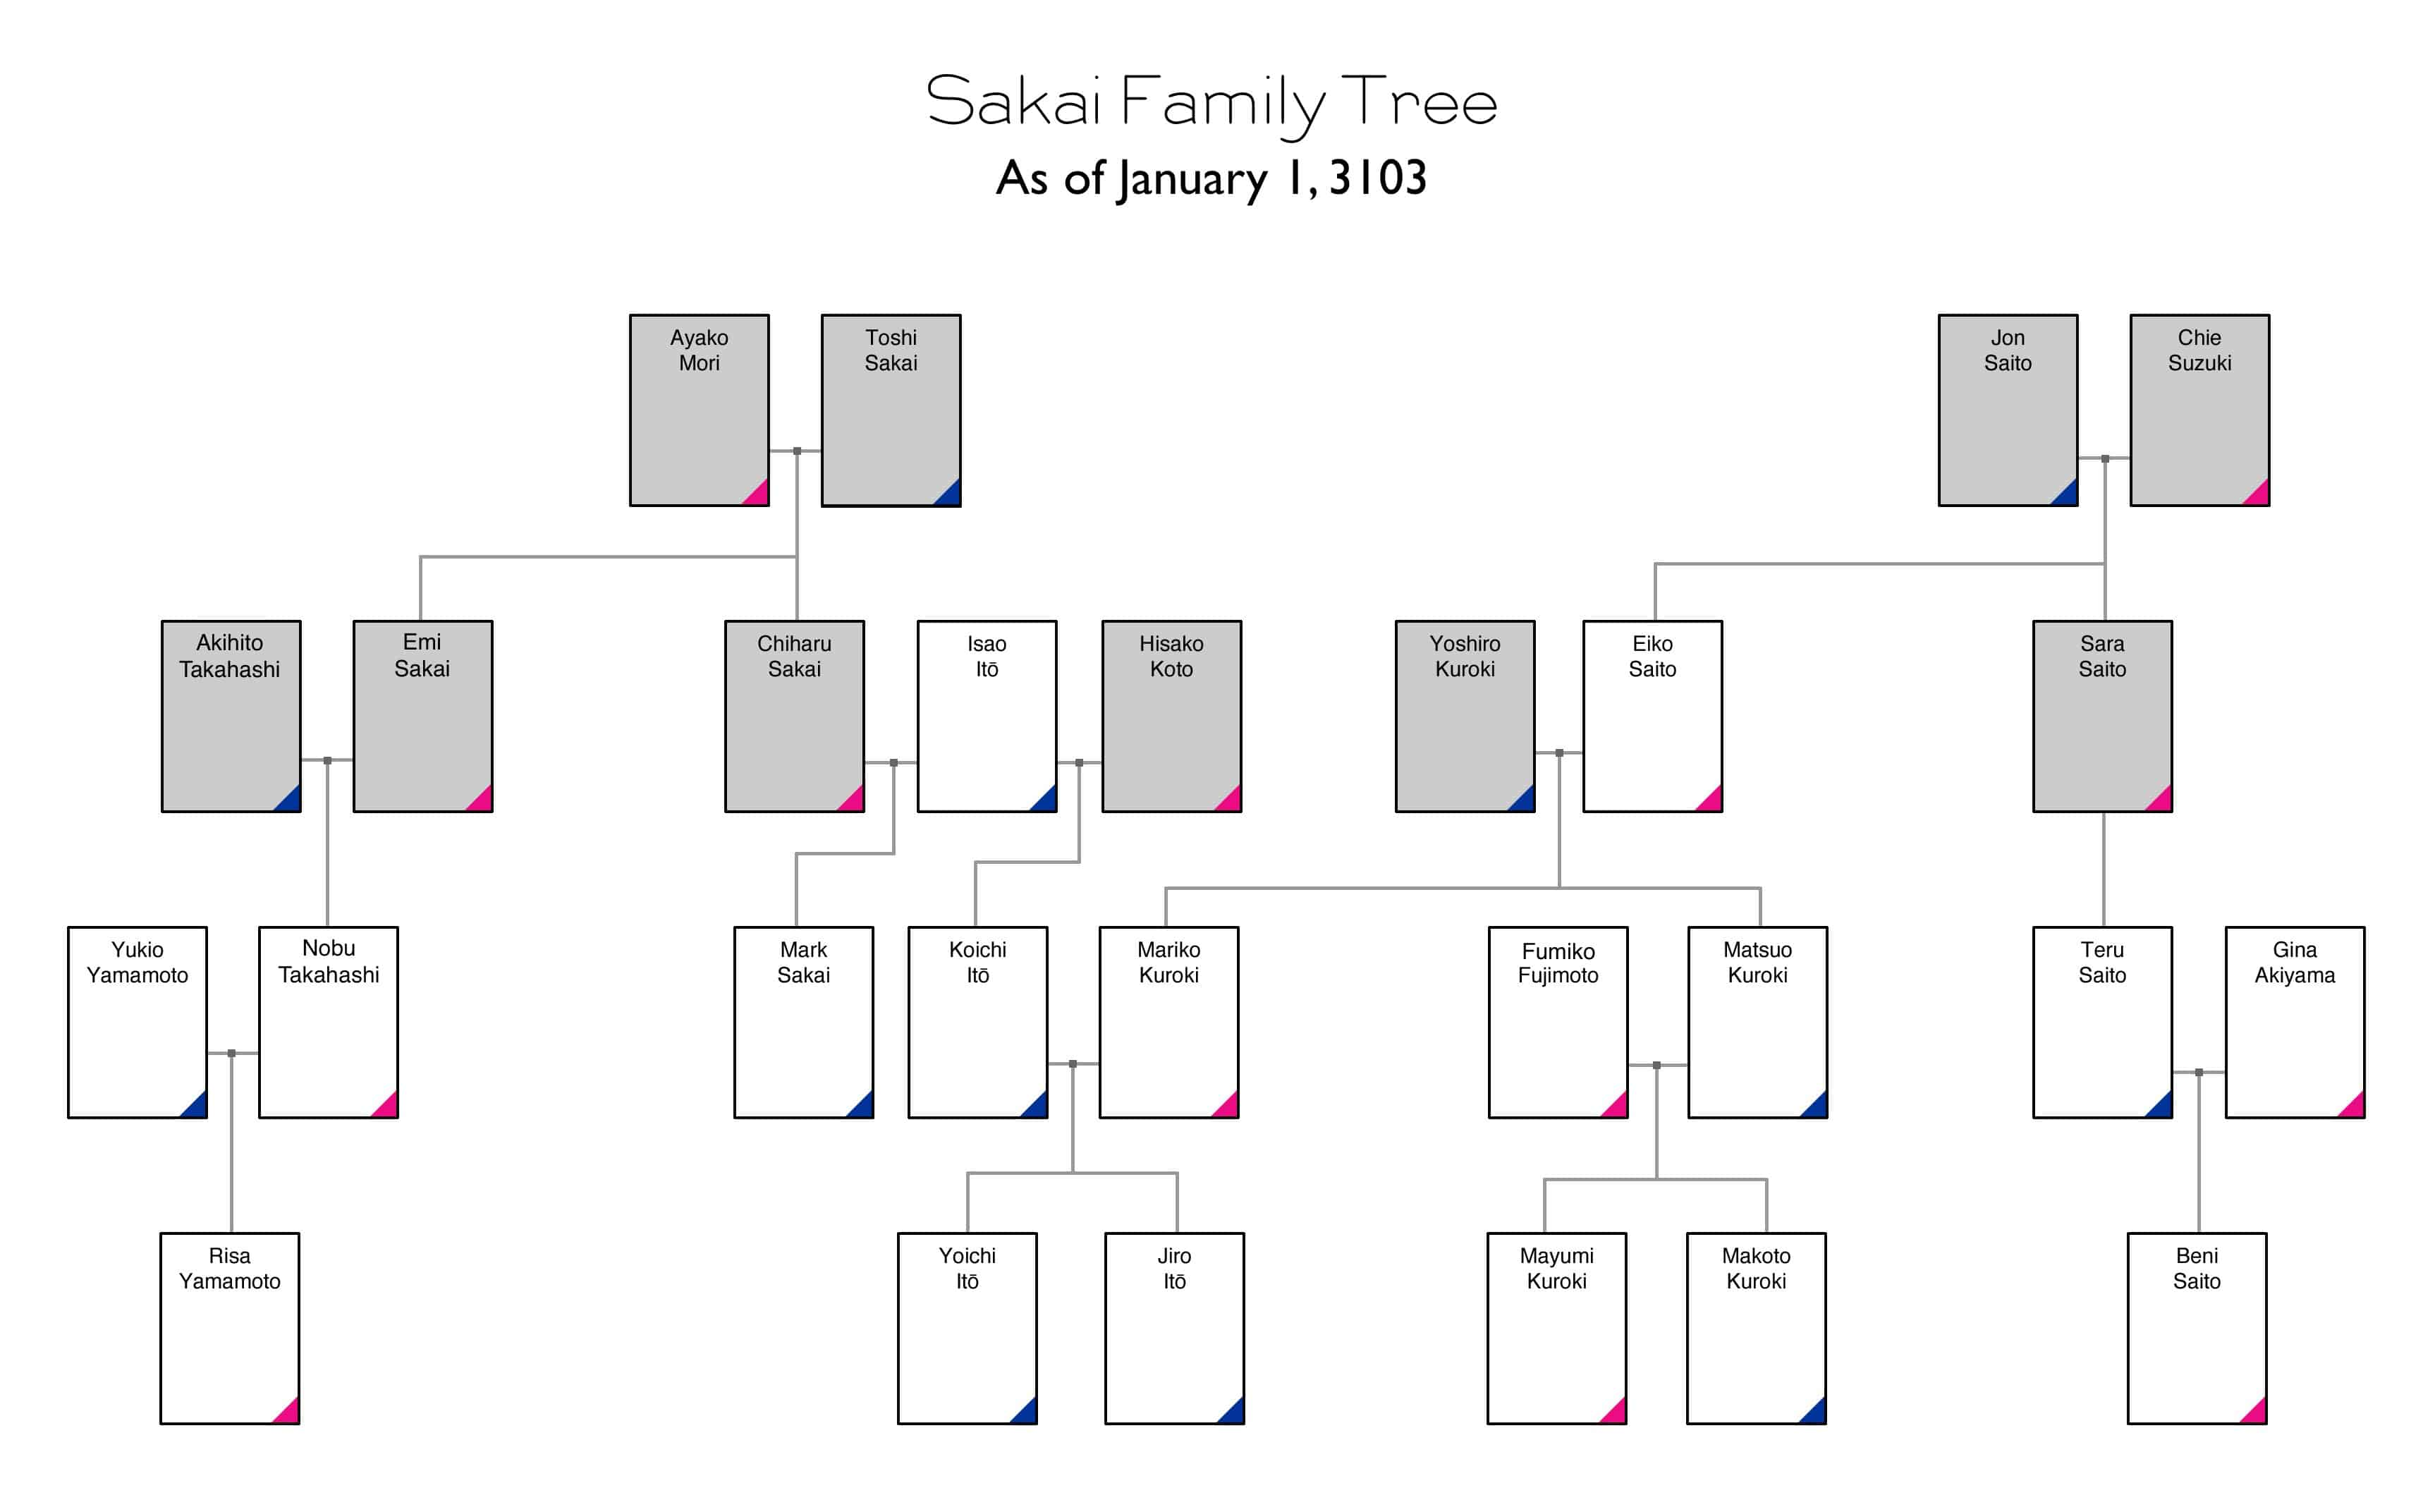 Check out the family tree for Sakai family!